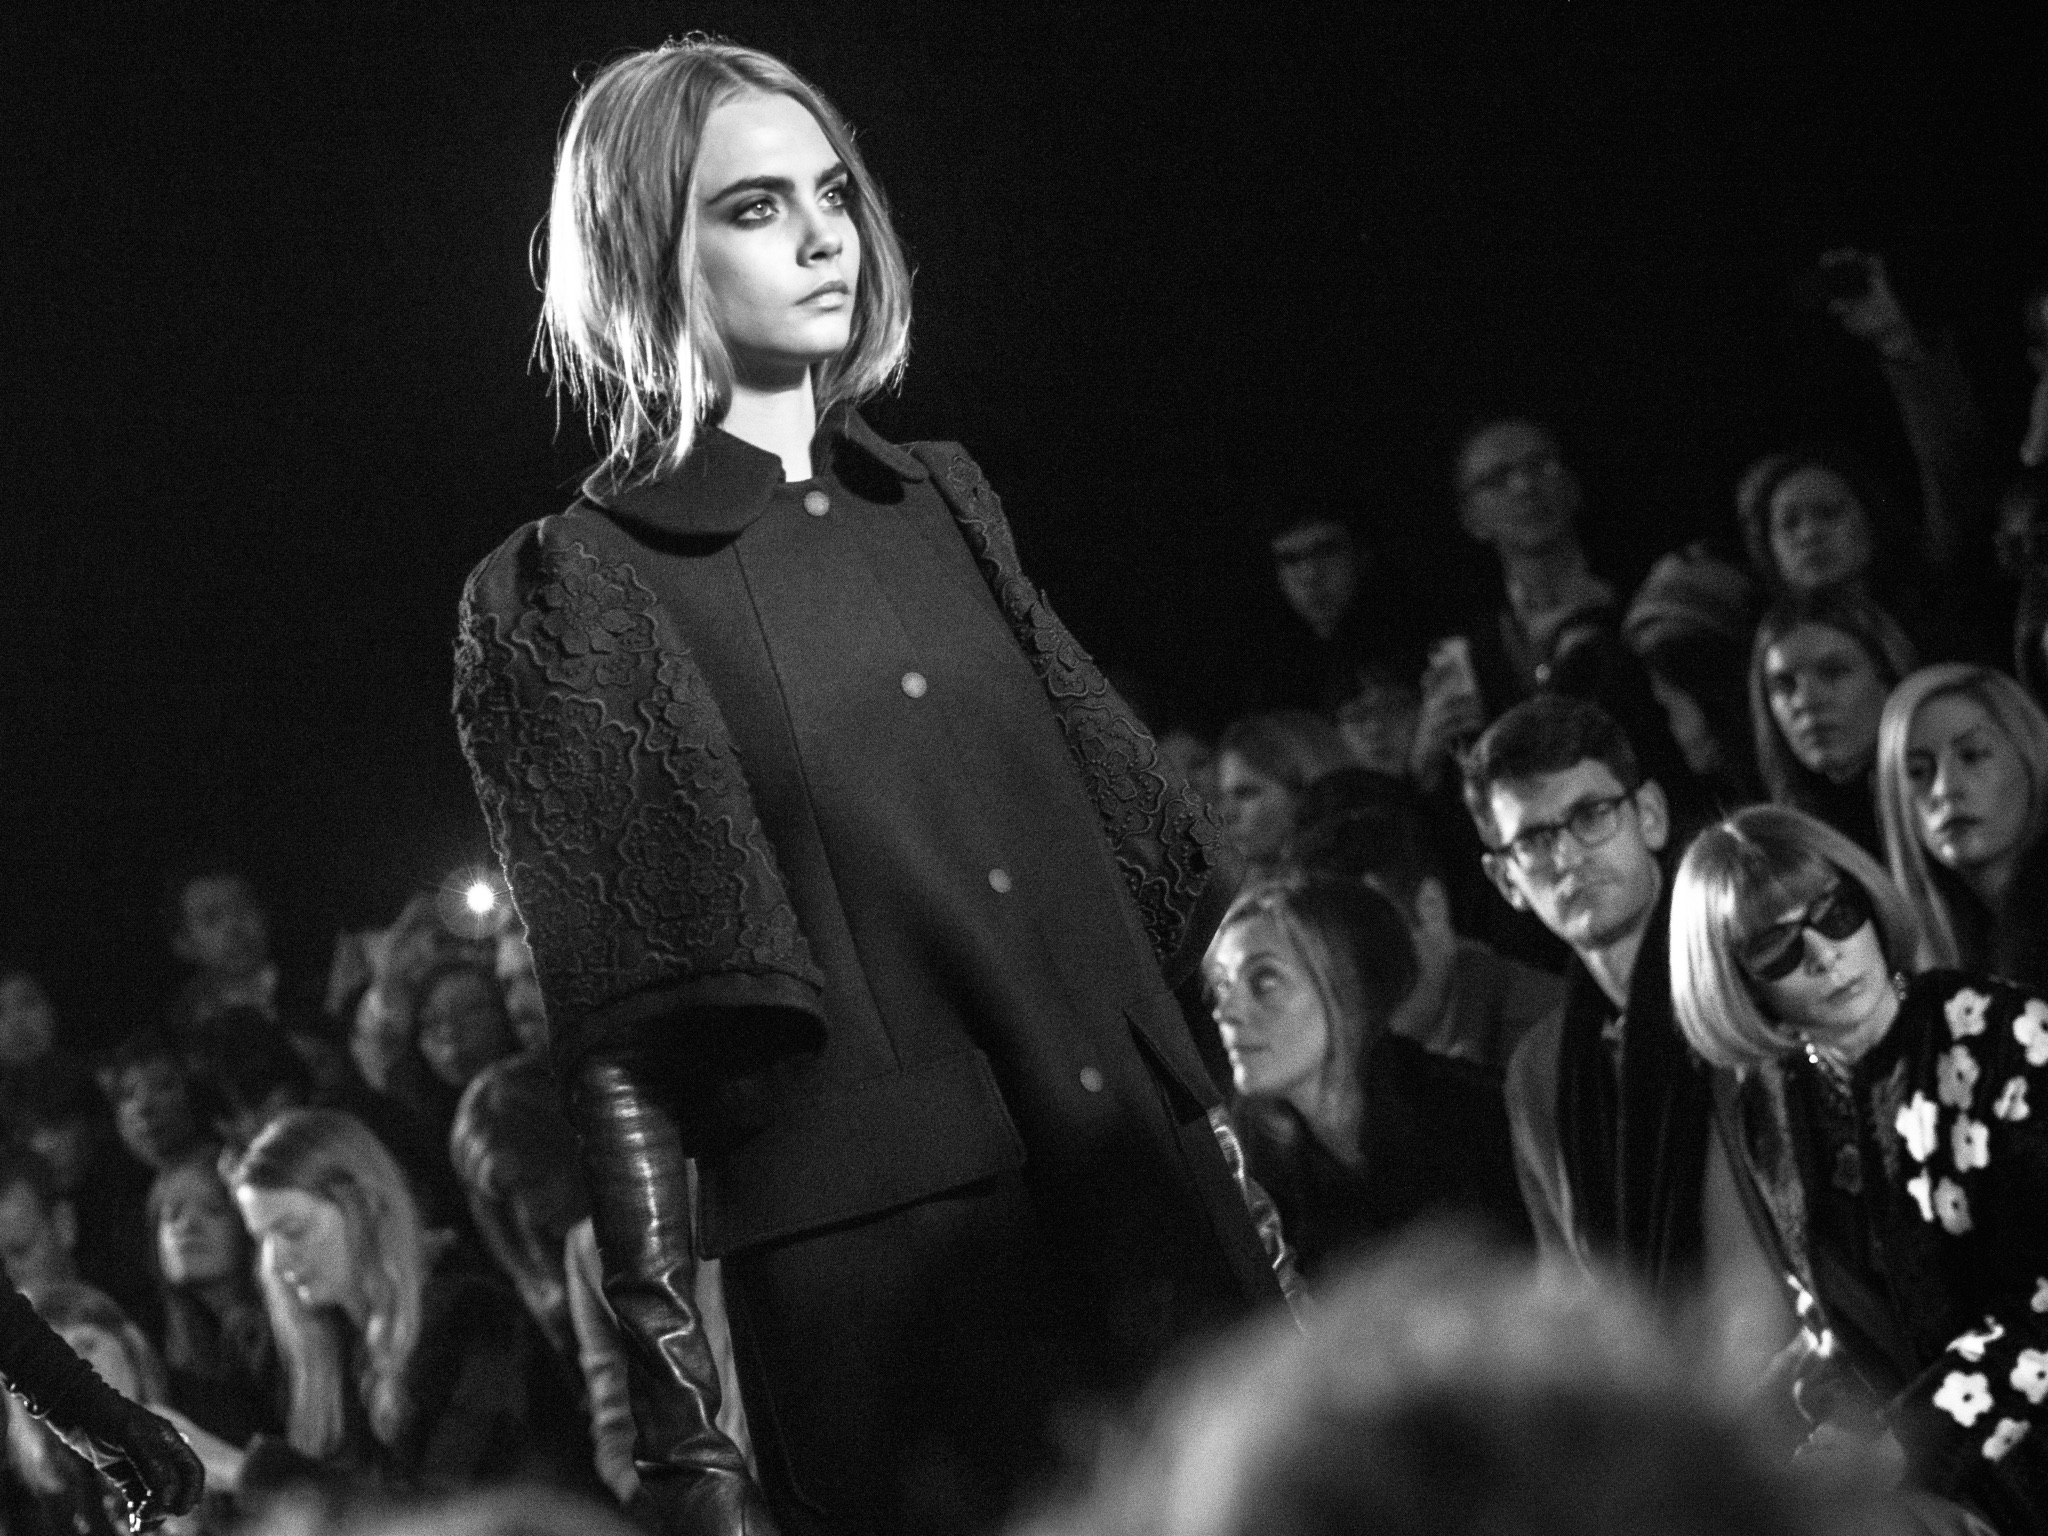 London Fashion Week LFW Runway Show Photography Photograph How to Model Walking Catwalk Youtube Video Guide Tutorial Mulberry Cara Delevingne Anna Wintour